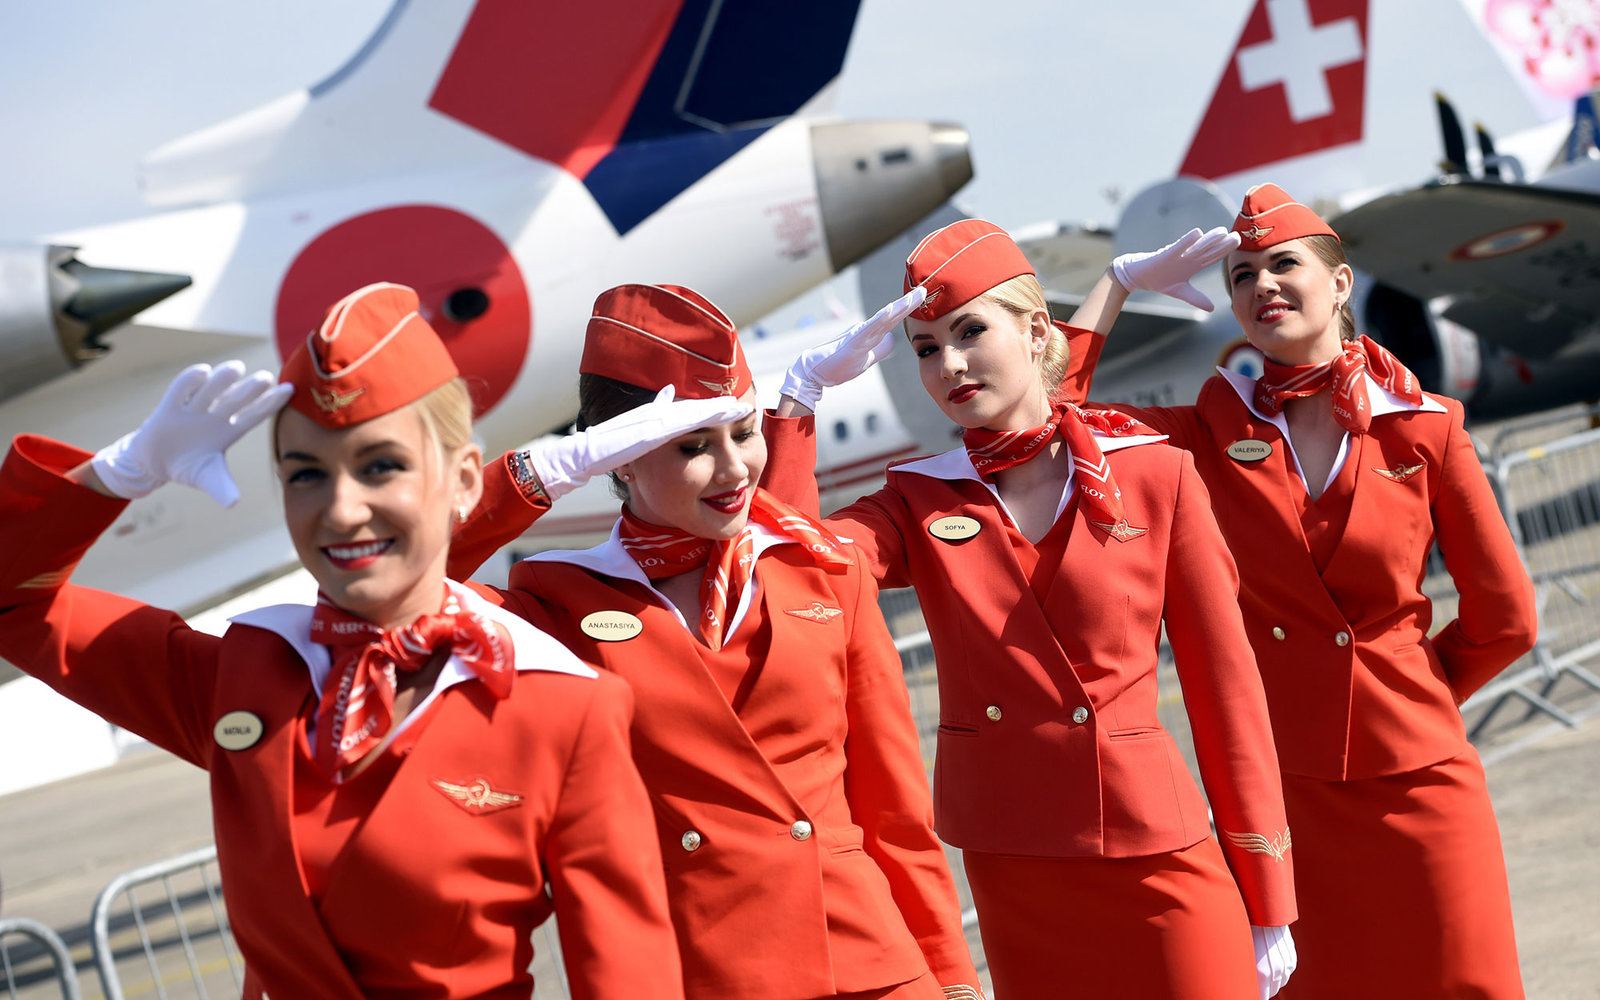 Cabin crew of the Russian airline Aeroflot salte as they walk past during the International Paris Airshow at Le Bourget on June 16, 2015.  AFP PHOTO /MIGUEL MEDINA        (Photo credit should read MIGUEL MEDINA/AFP/Getty Images)